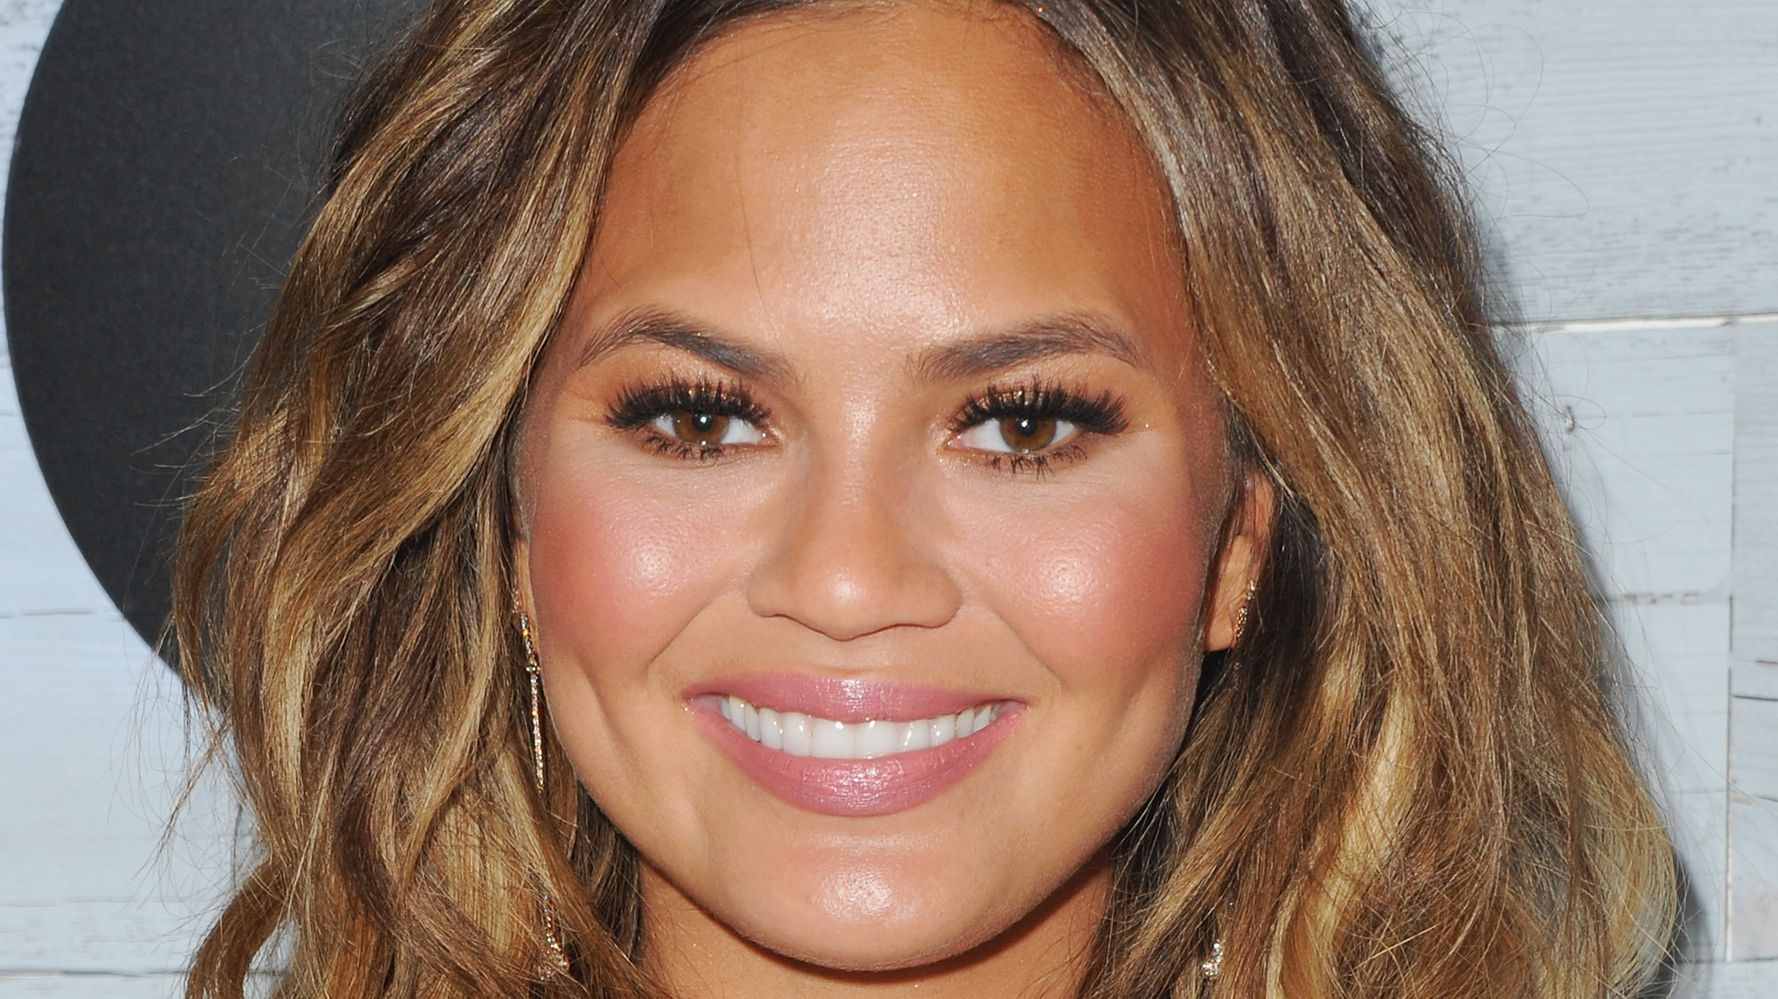 What Your Face Shape Says About Your Personality